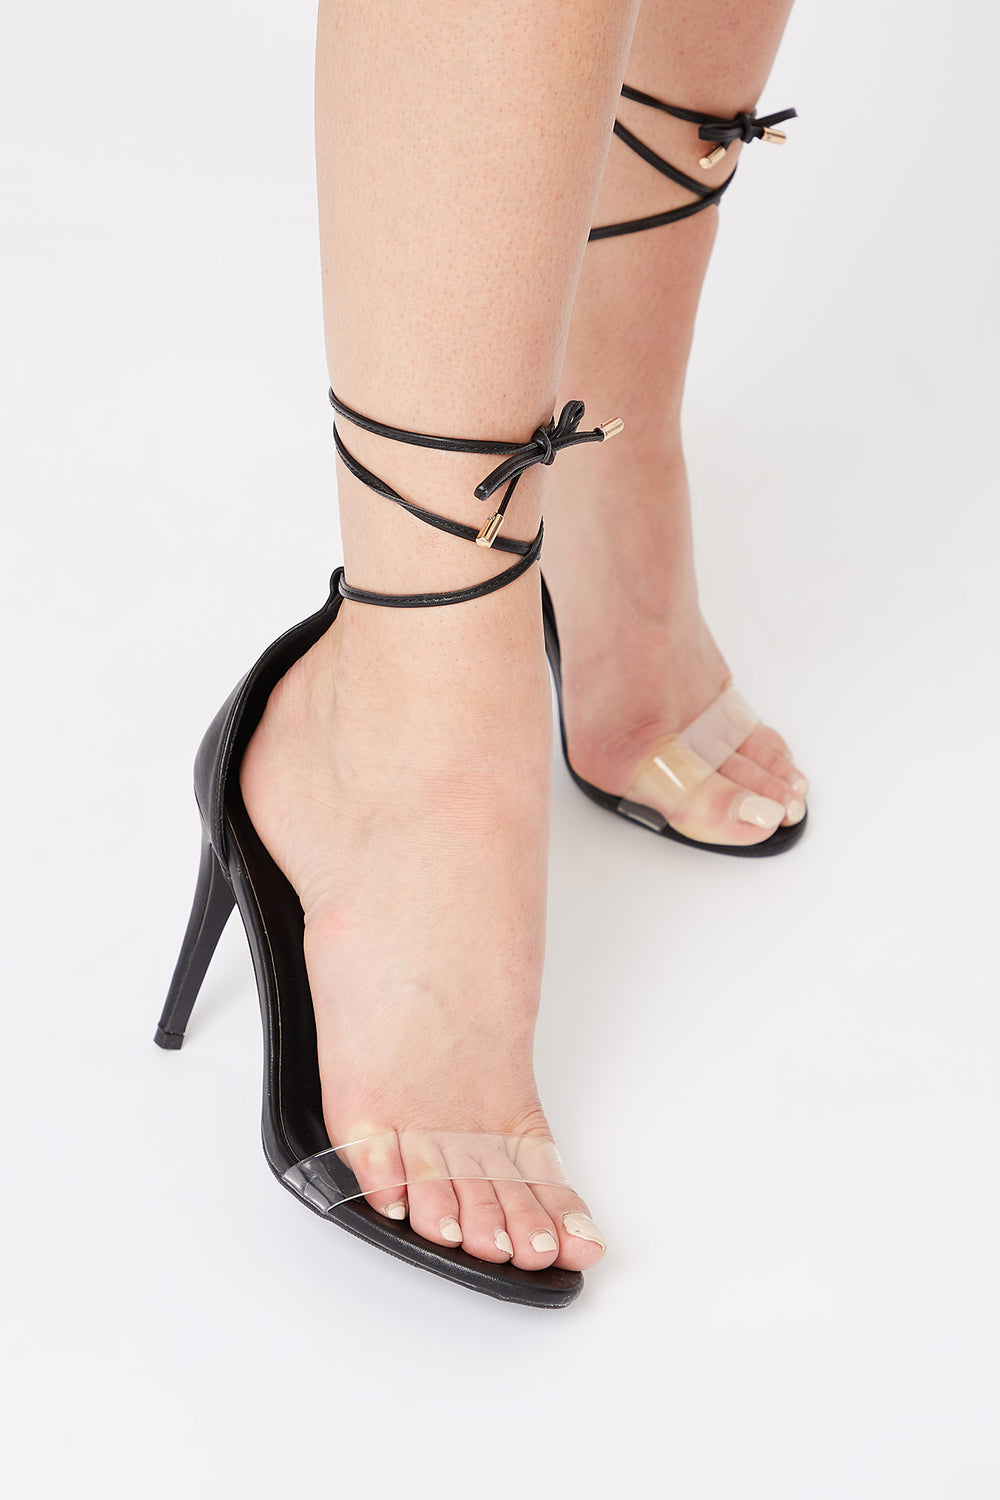 Clear Band Tie-Up Stiletto Sandal Black